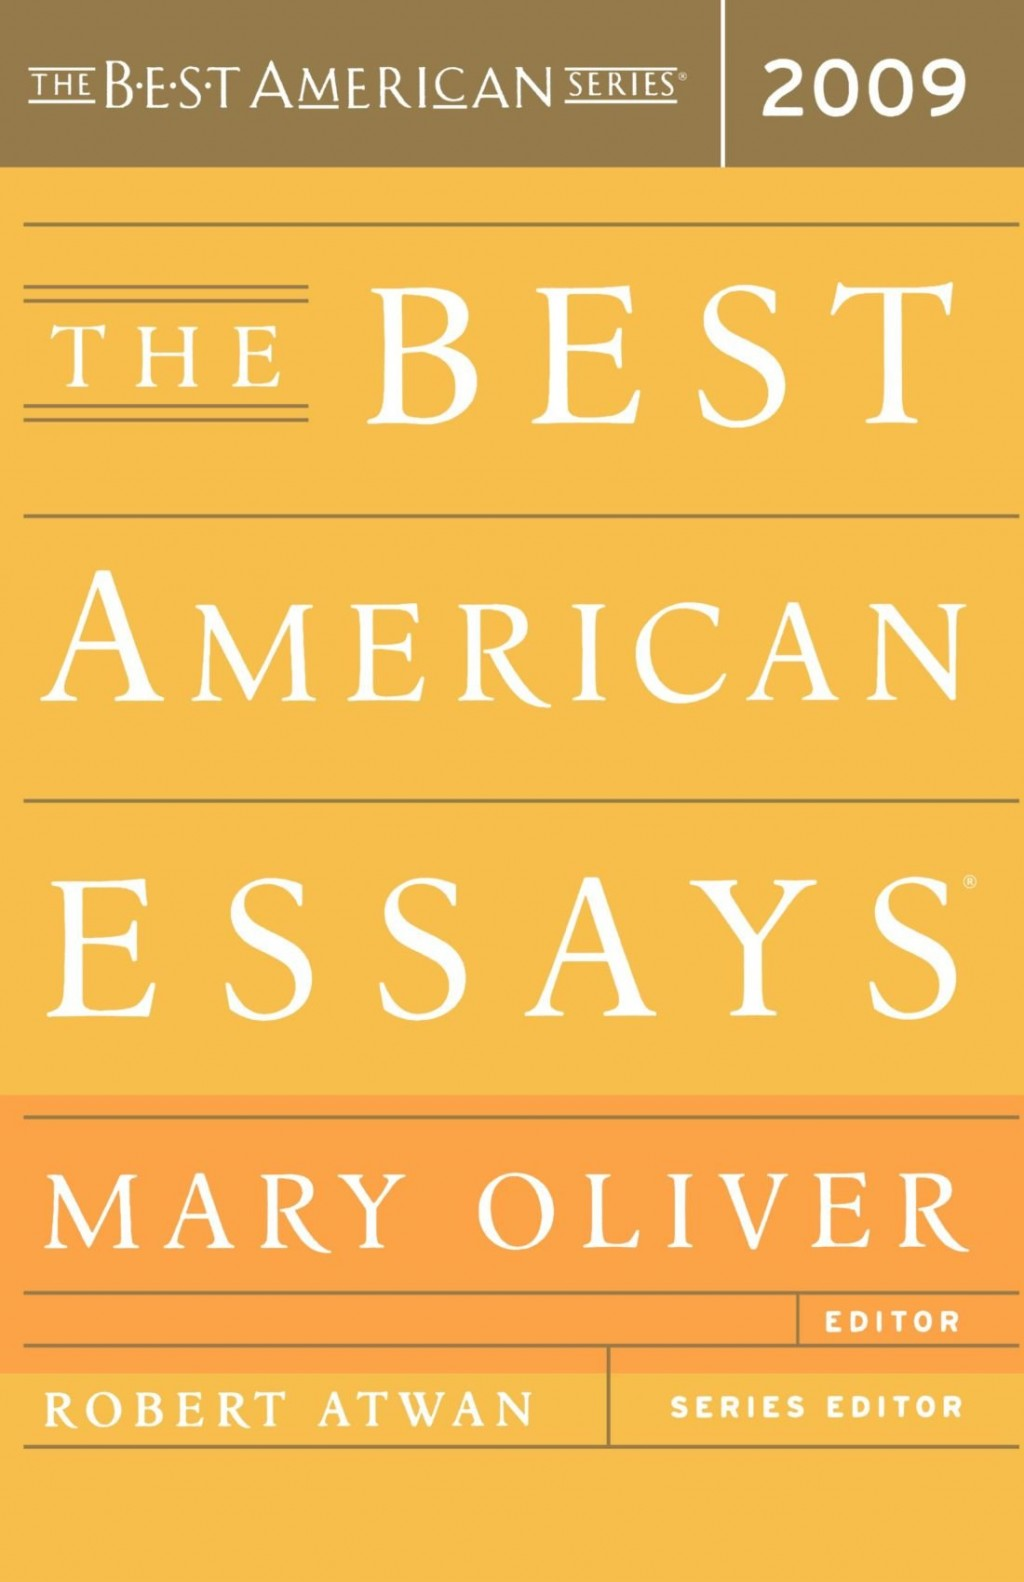 009 617qb5slhfl Essay Example Best American Striking Essays 2017 Table Of Contents The Century Pdf Large